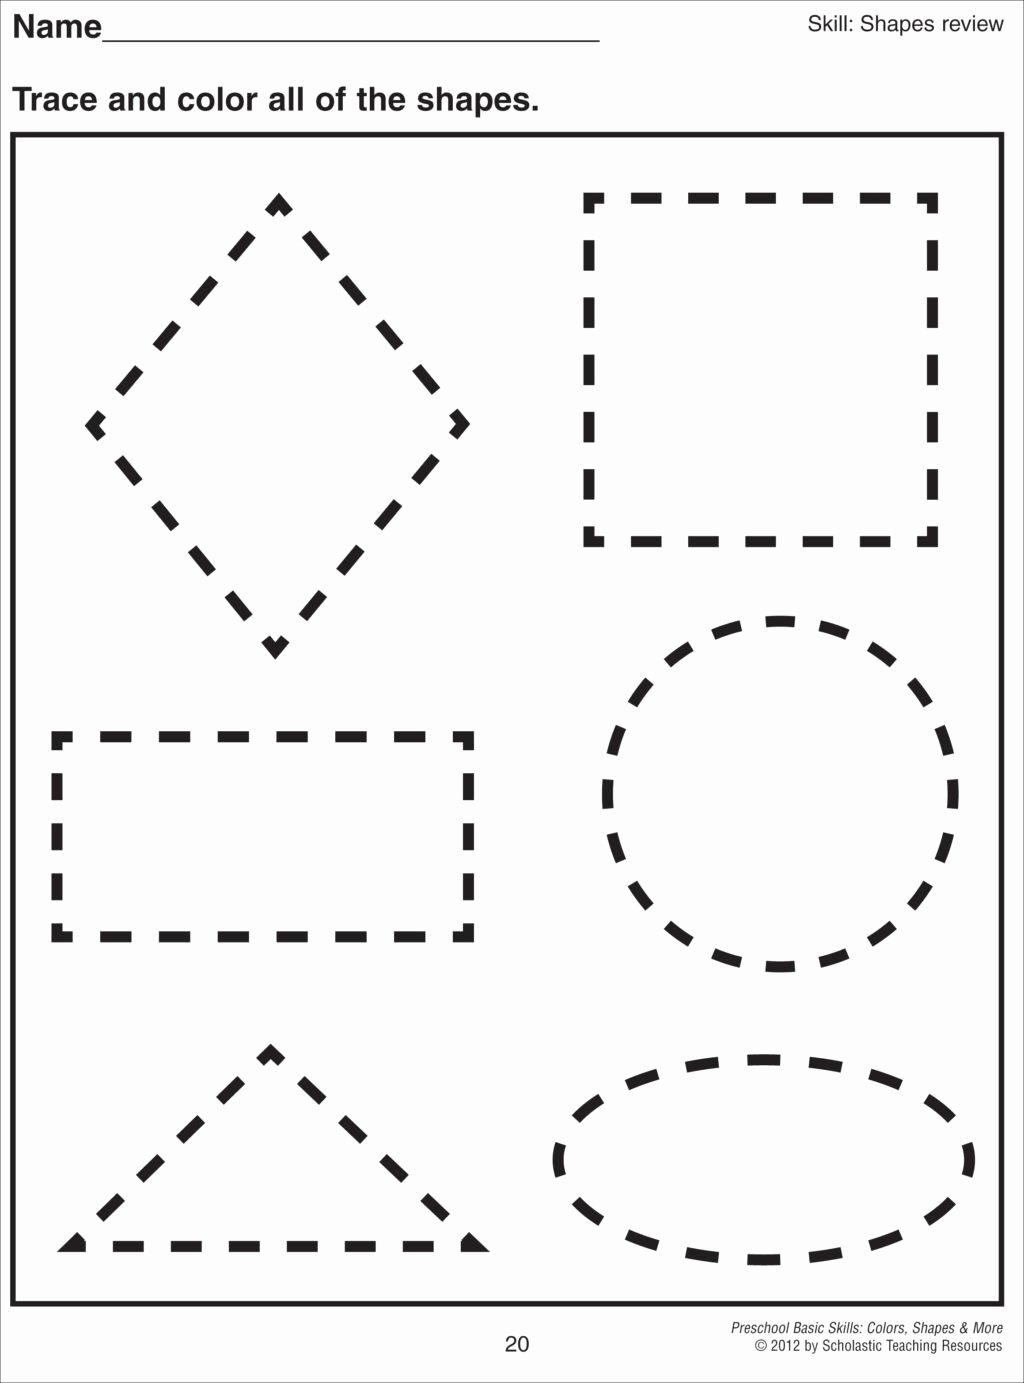 Worksheets for Preschoolers Shapes Unique Worksheet Math Worksheet About Preschool Shapes